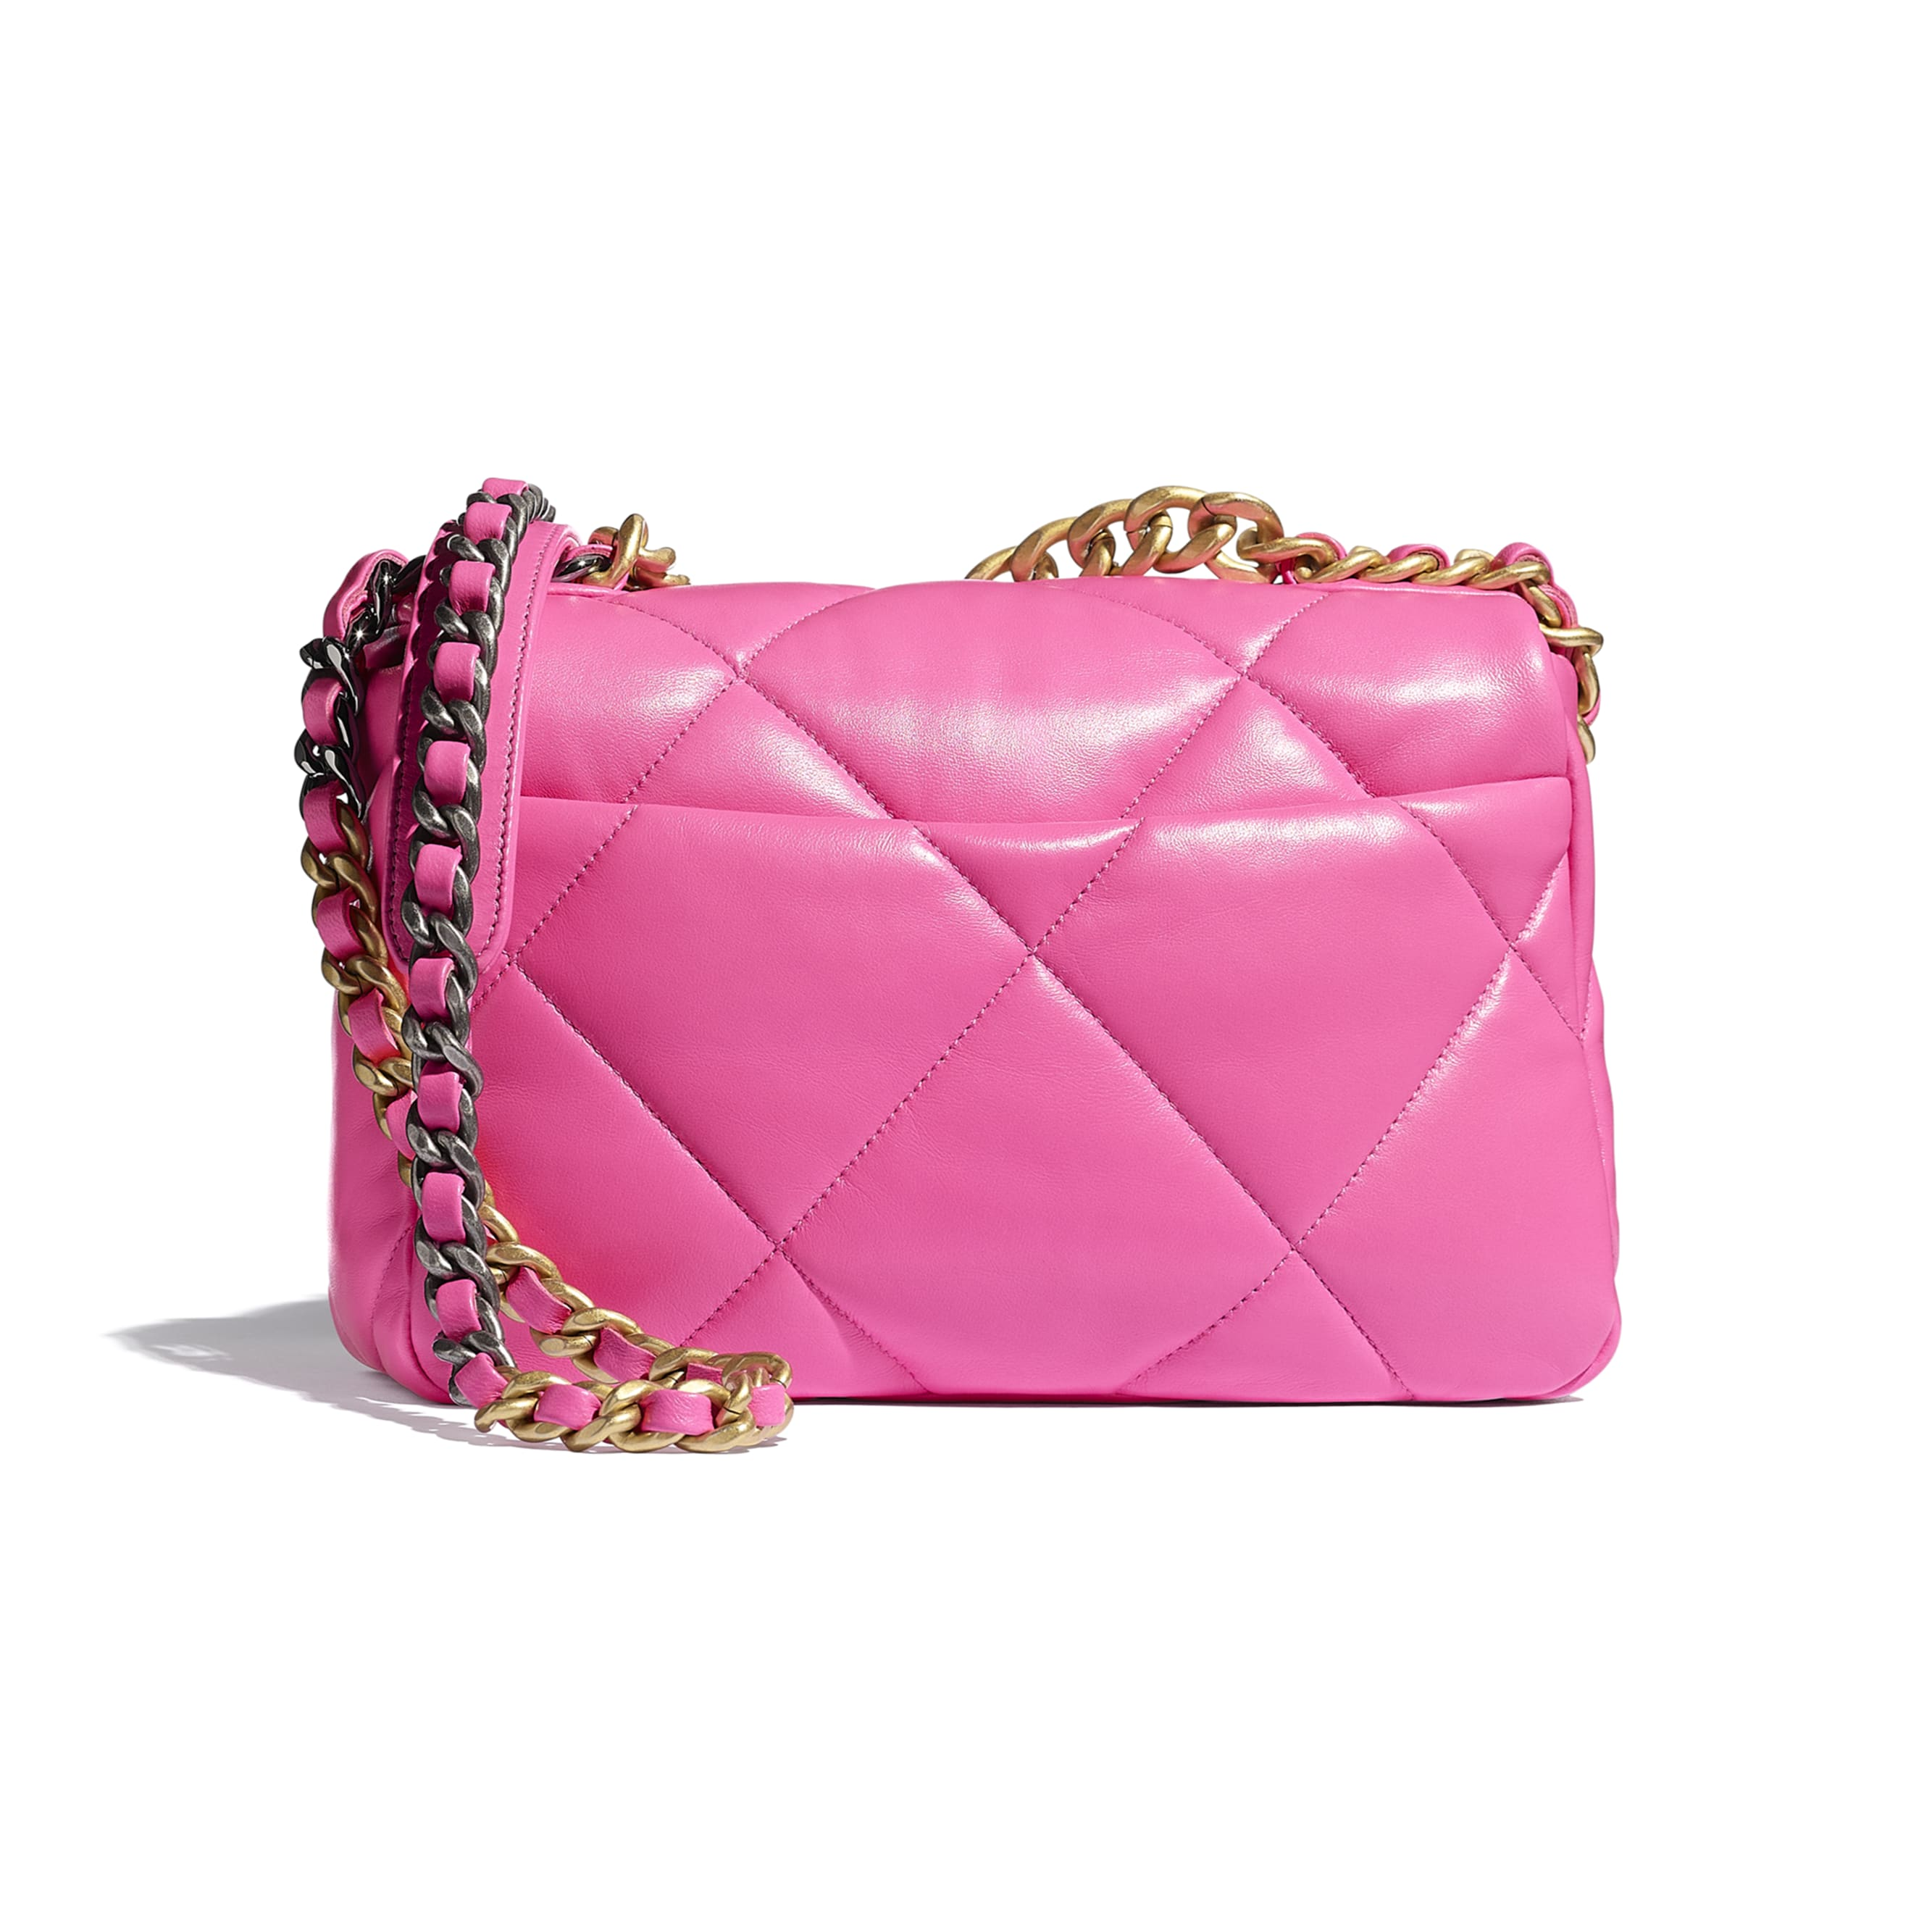 CHANEL 19 Handbag - Neon Pink - Shiny Lambskin, Gold-Tone, Silver-Tone & Ruthenium-Finish Metal - CHANEL - Alternative view - see standard sized version